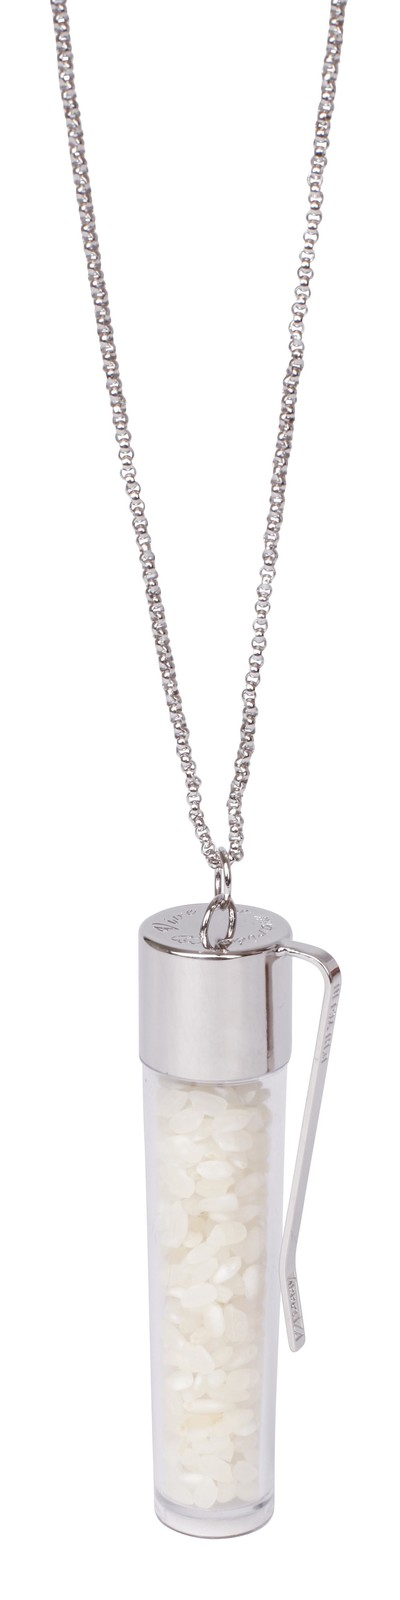 Rice Necklace Silver - © D'heygere